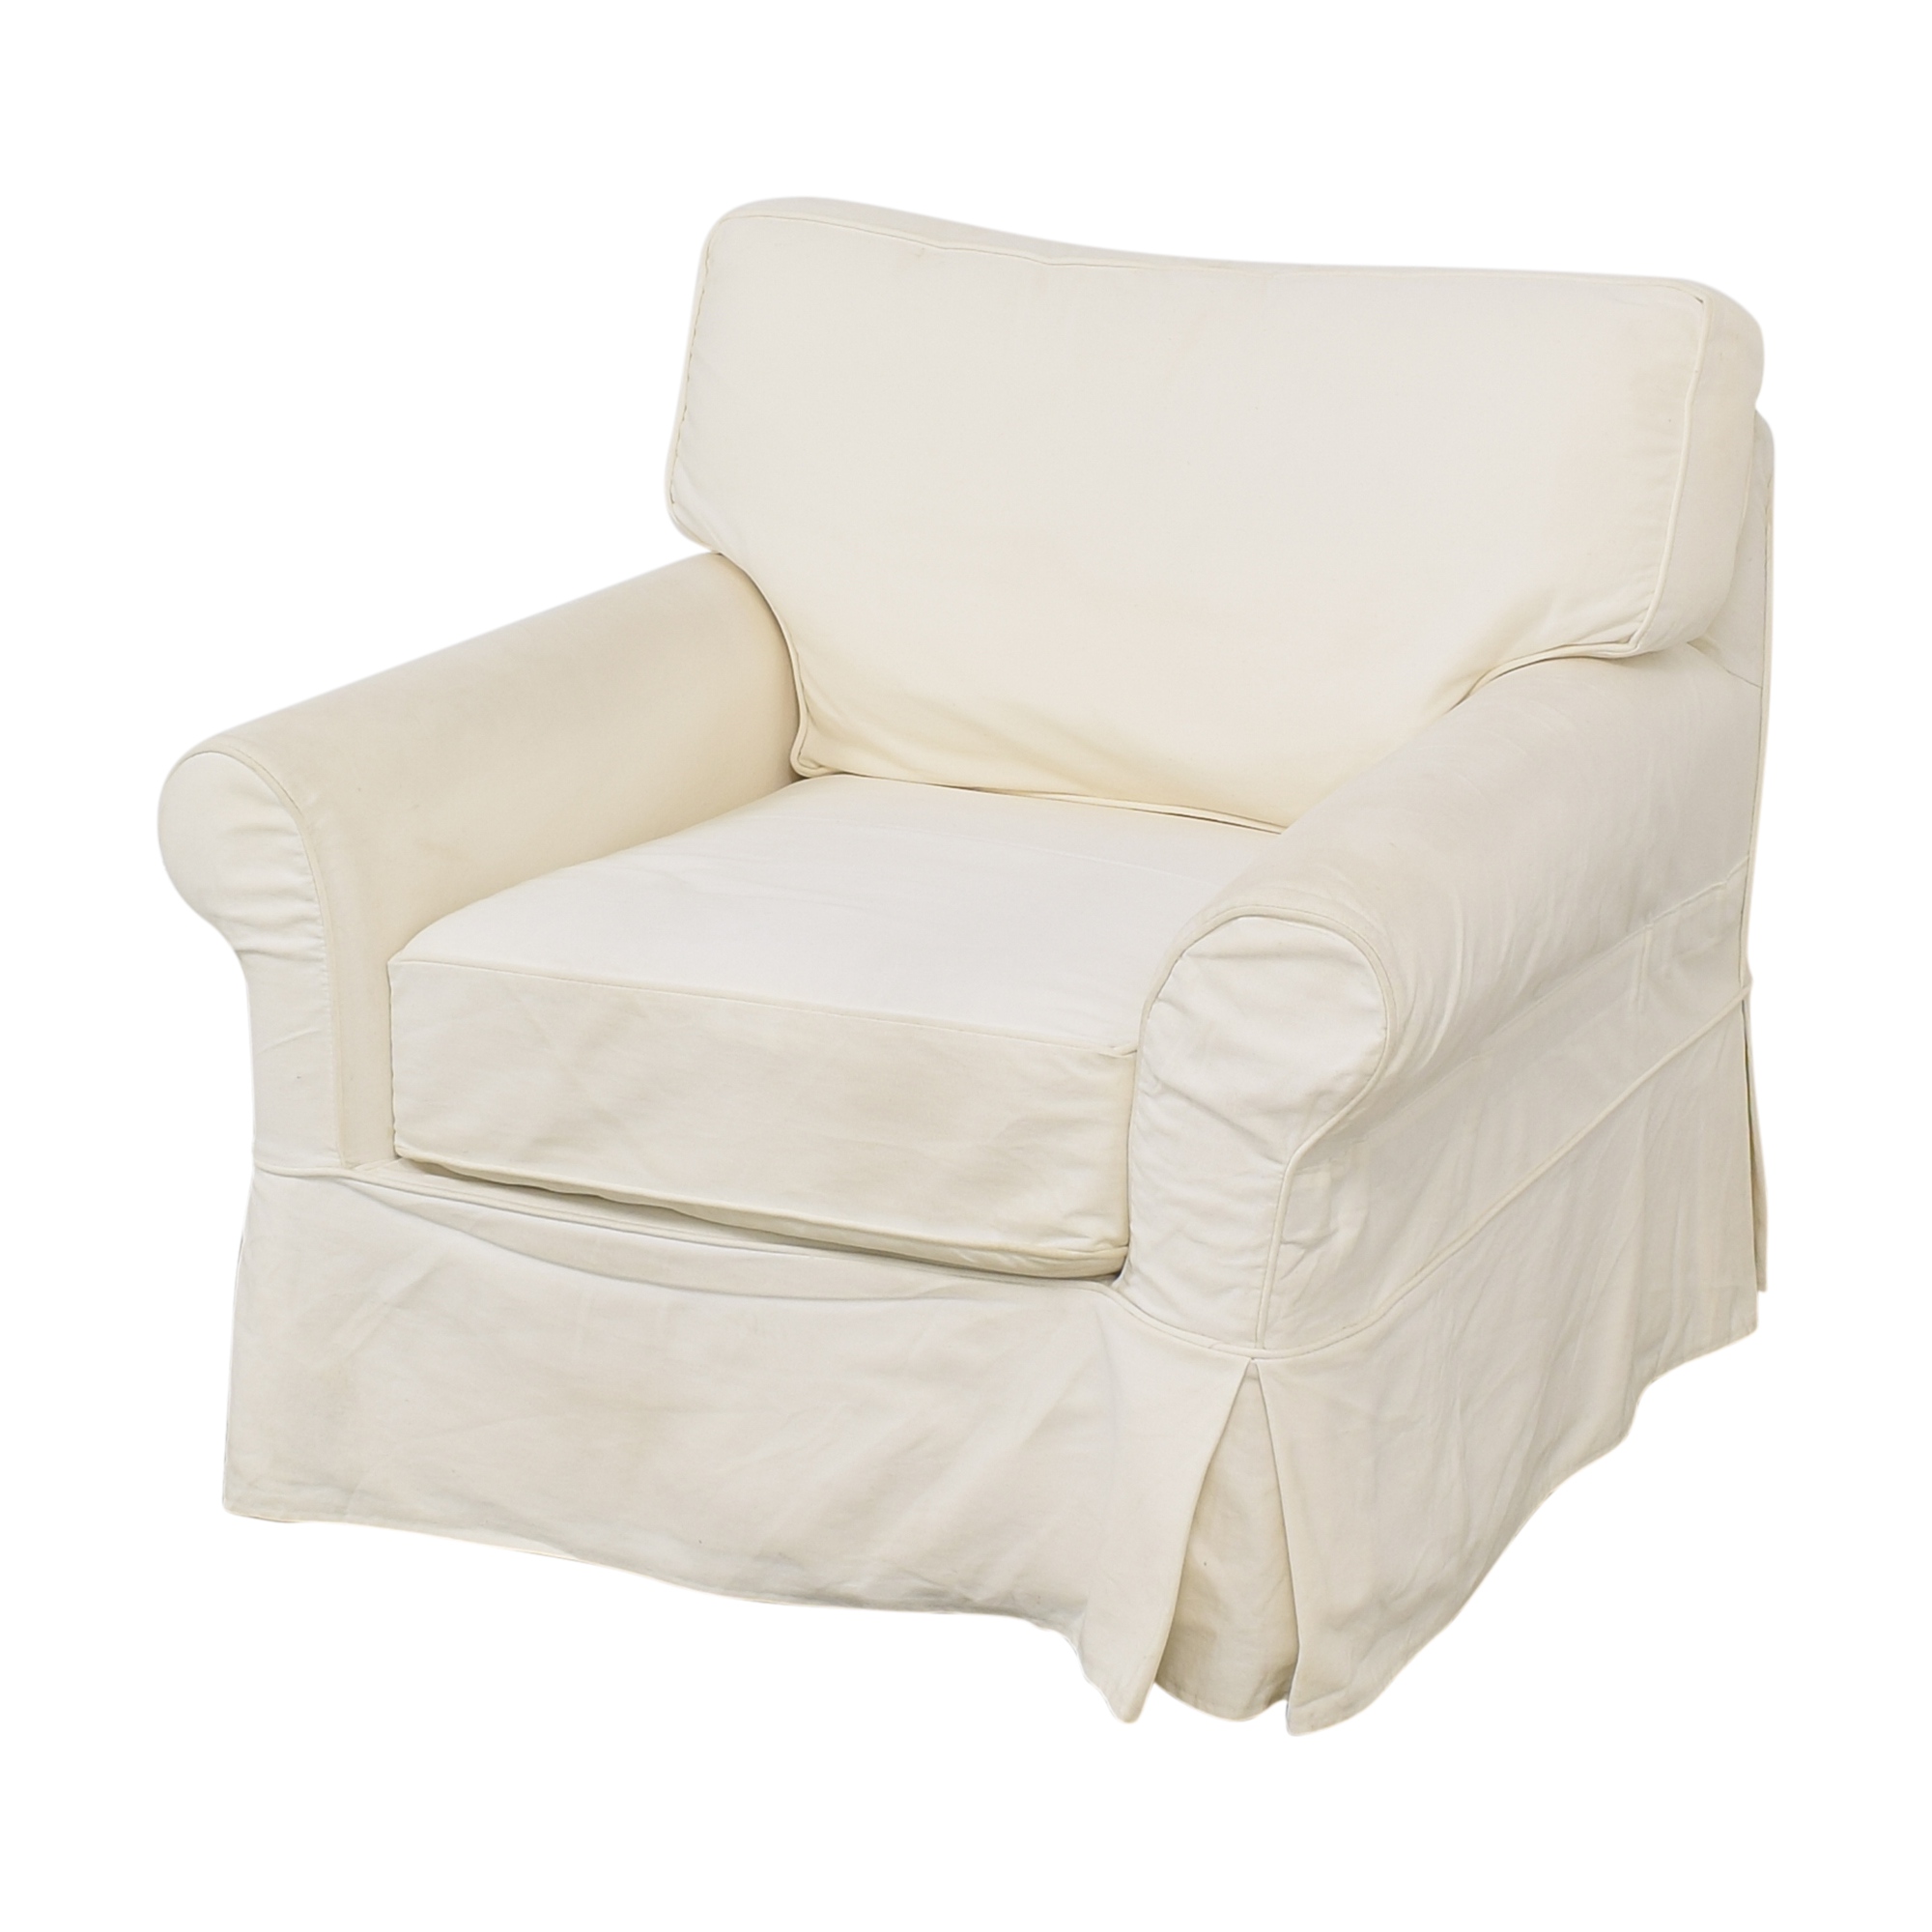 Crate & Barrel Crate & Barrel Slipcovered Arm Chair with Ottoman coupon